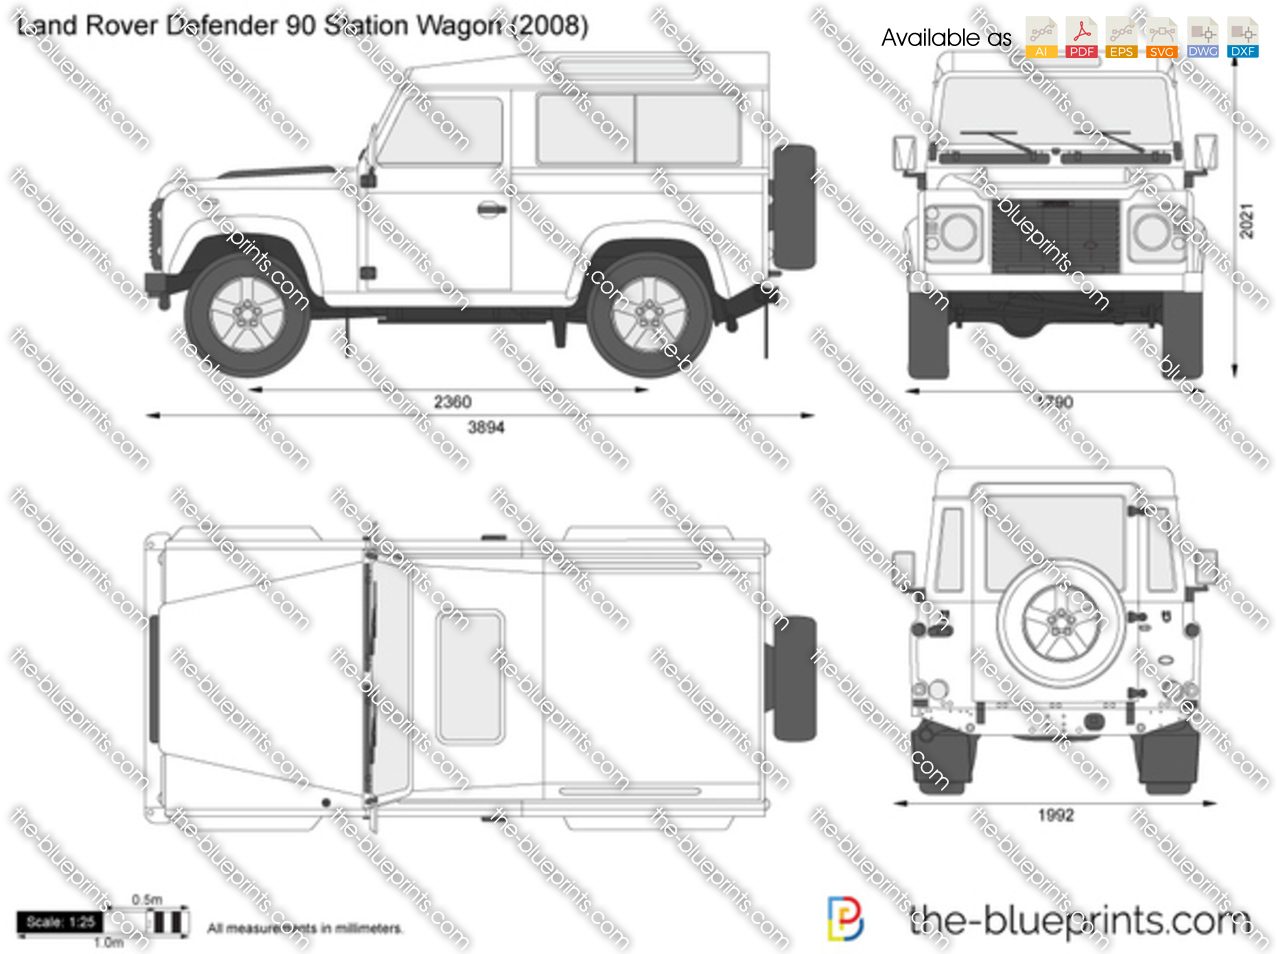 1995 Land Rover Defender 90 Station Wagon